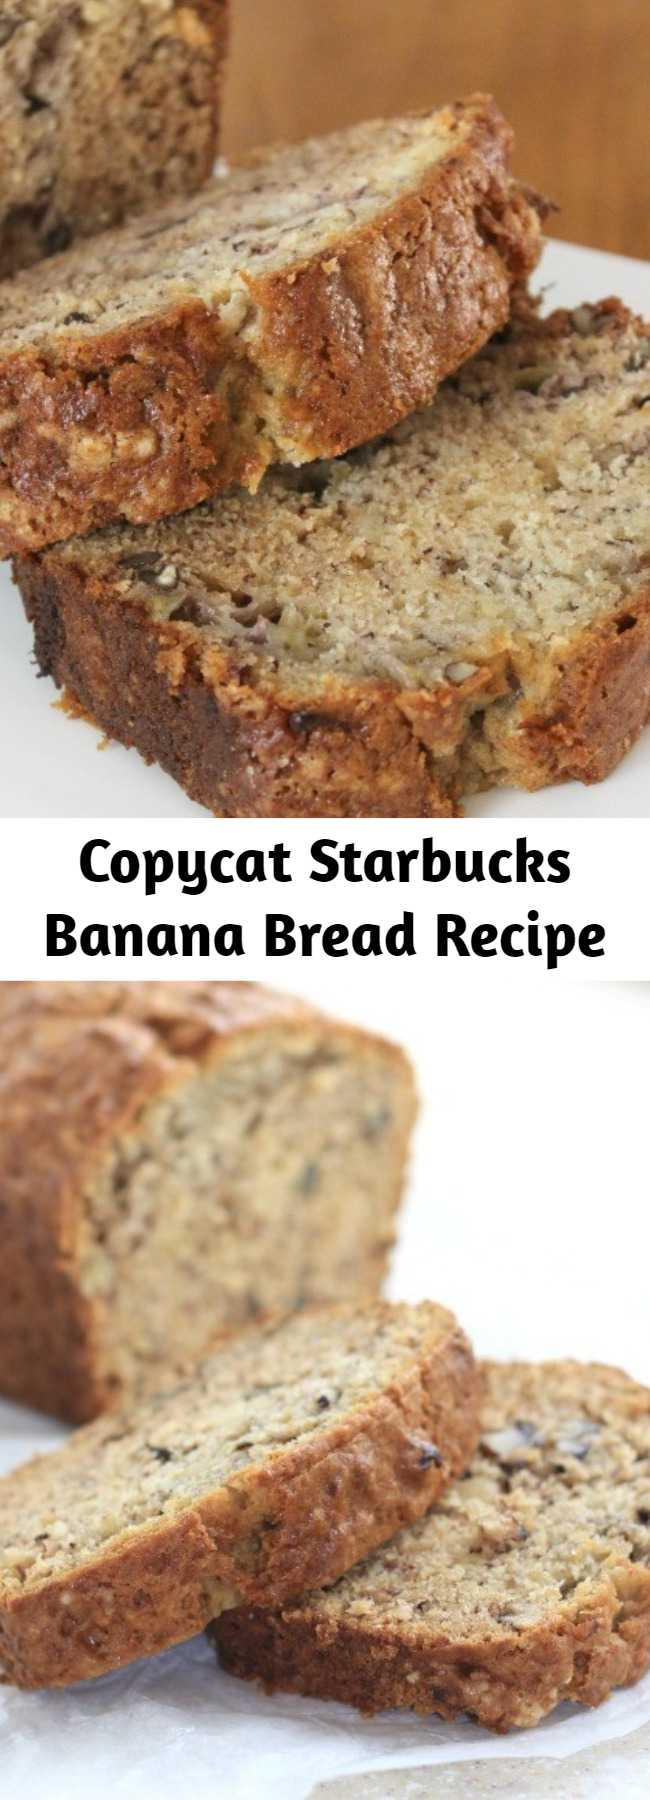 Copycat Starbucks Banana Bread Recipe - This recipe is actually from Starbucks directly so hopefully you like it as much as we do! This one is simple to make, packed with banana and is delicious plain, with nuts or add some chocolate chips for a real treat.